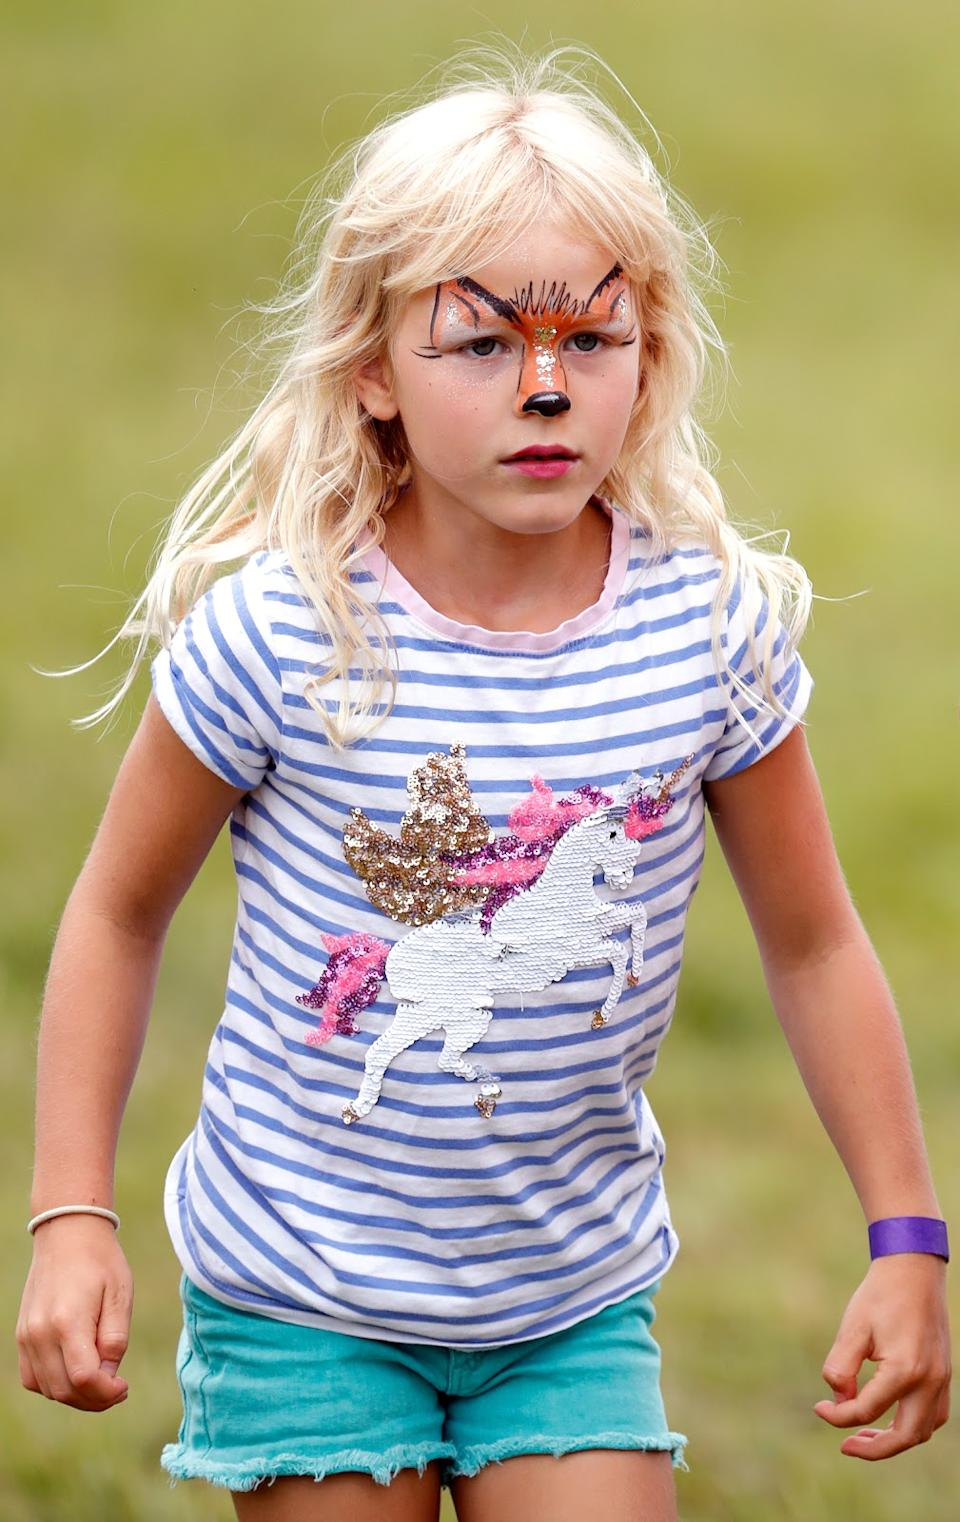 <p>Isla Phillips, wearing animal design face paint, at the 2019 Festival of British Eventing at Gatcombe Park. (Max Mumby/Indigo/Getty Images)</p>